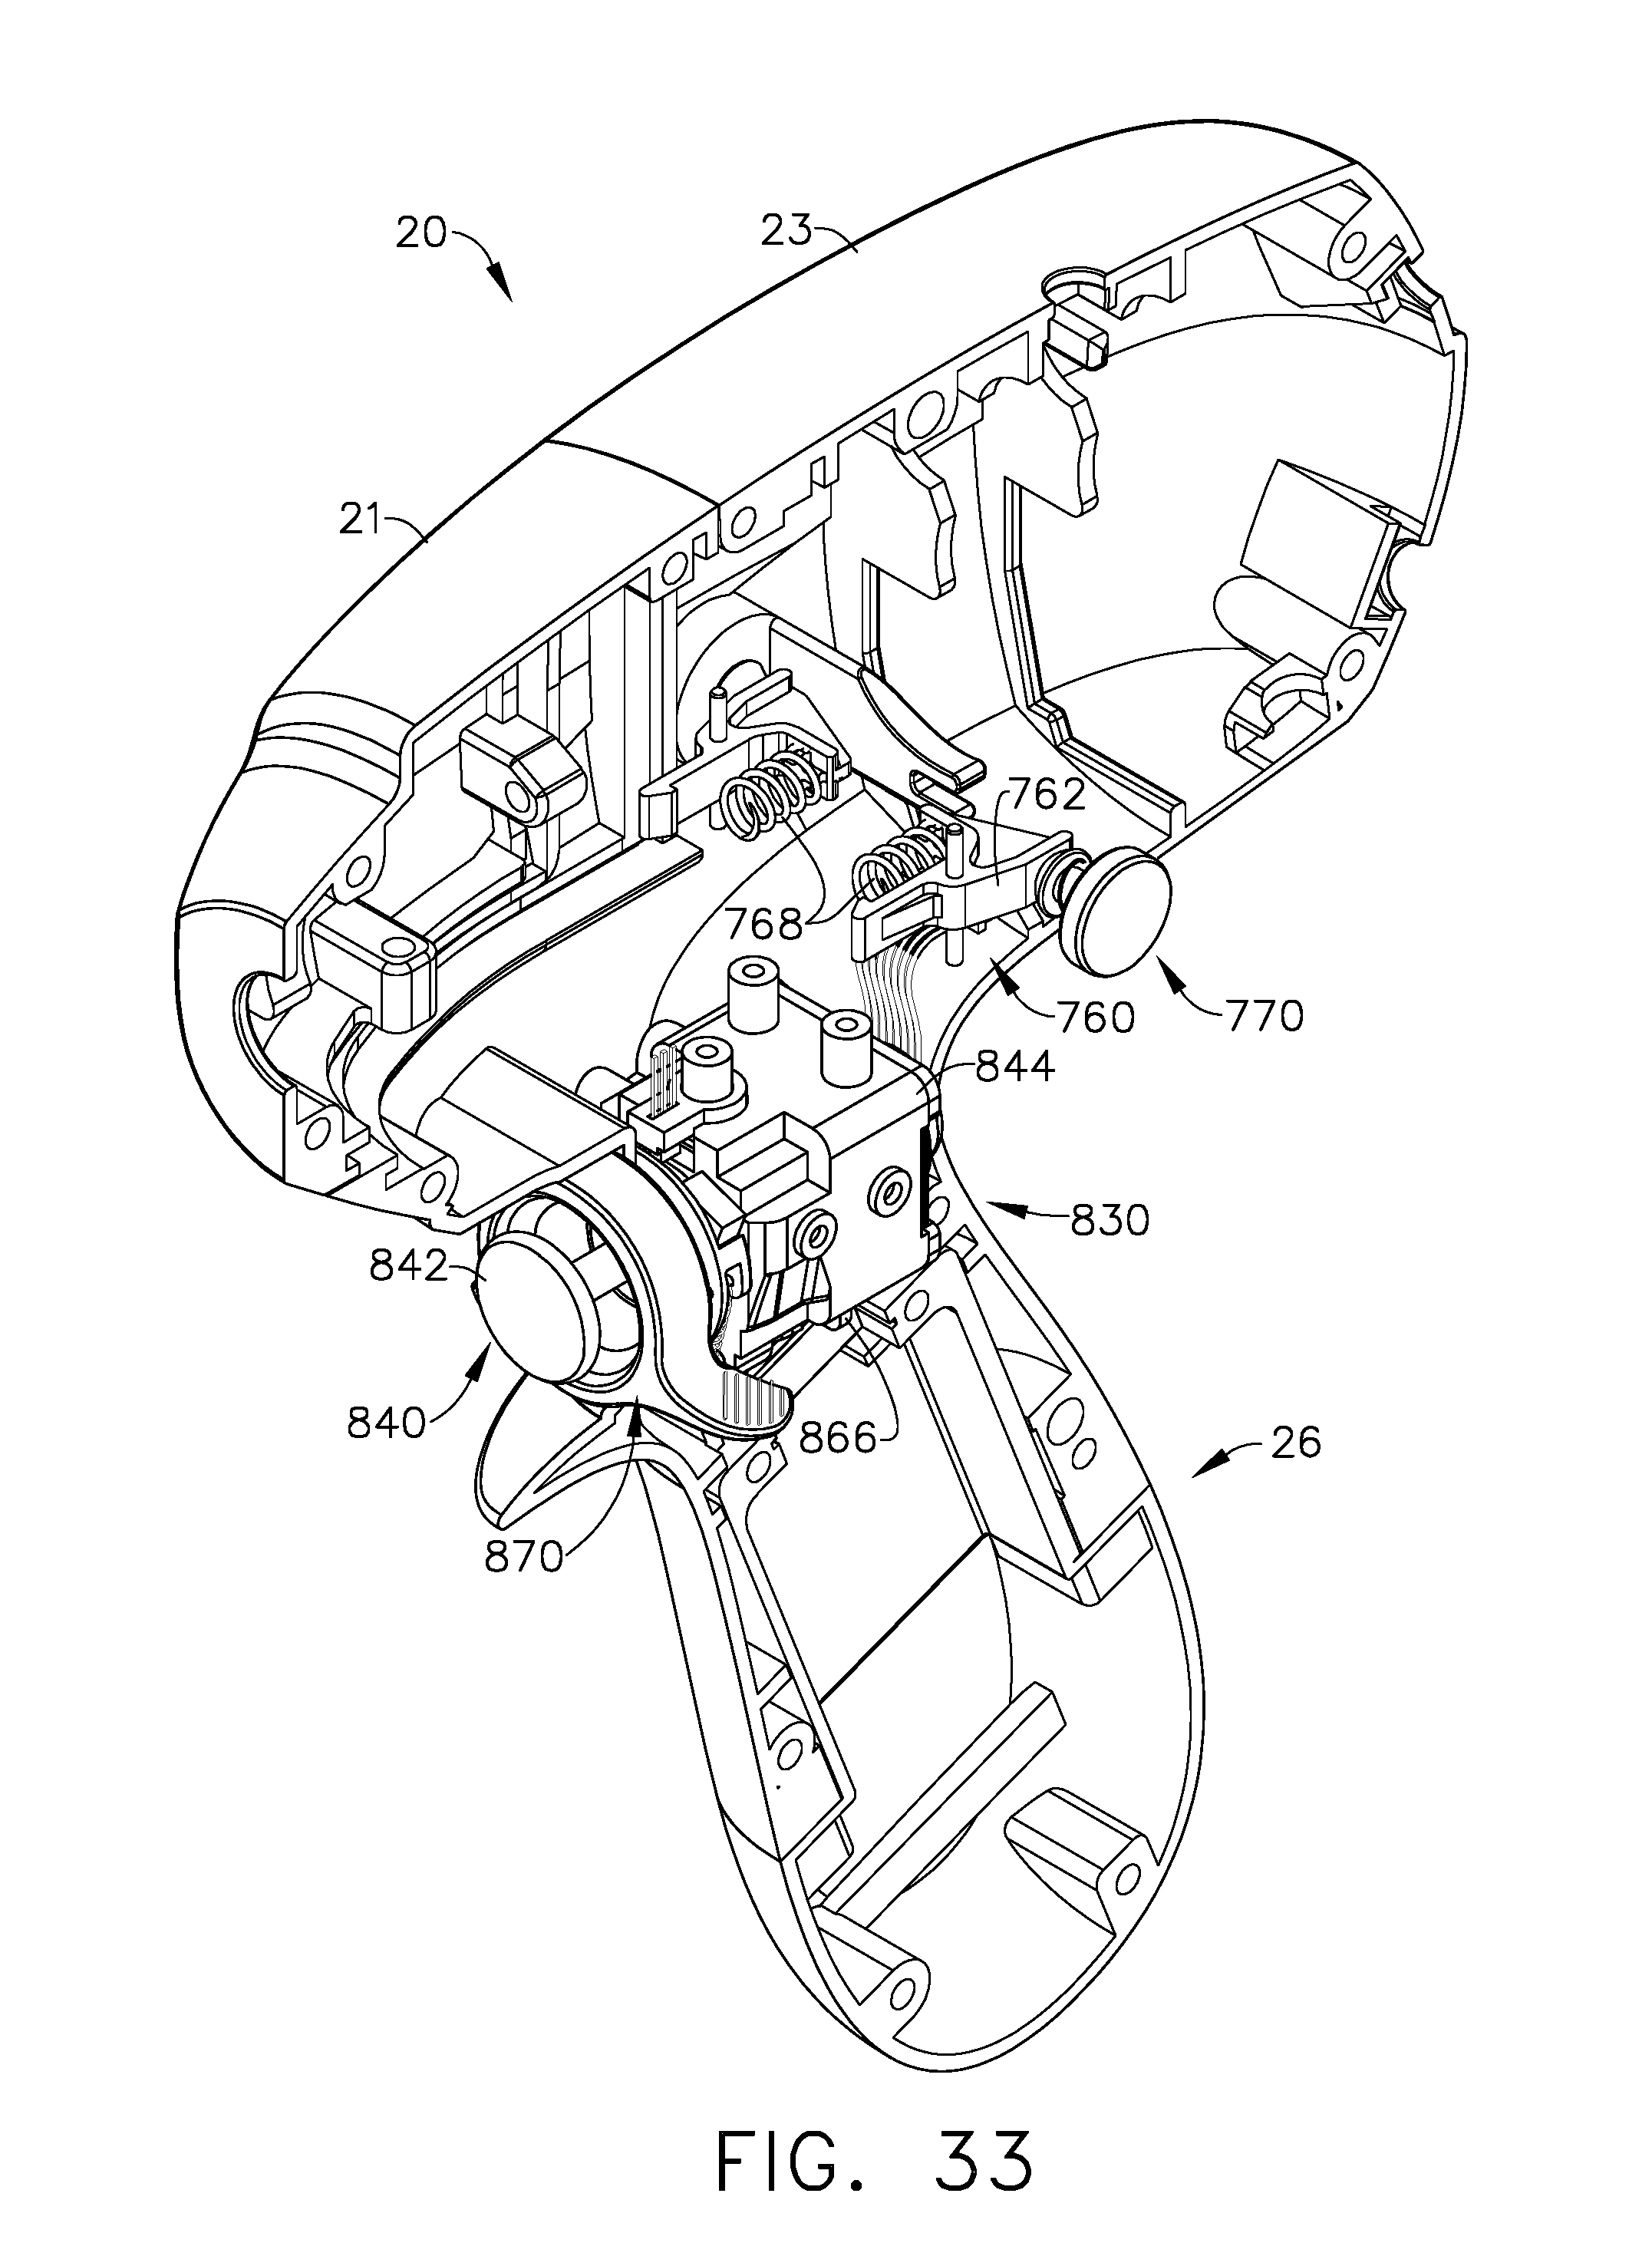 Us20170007347a1 articulatable surgical instruments with conductive pathways for signal munication patents